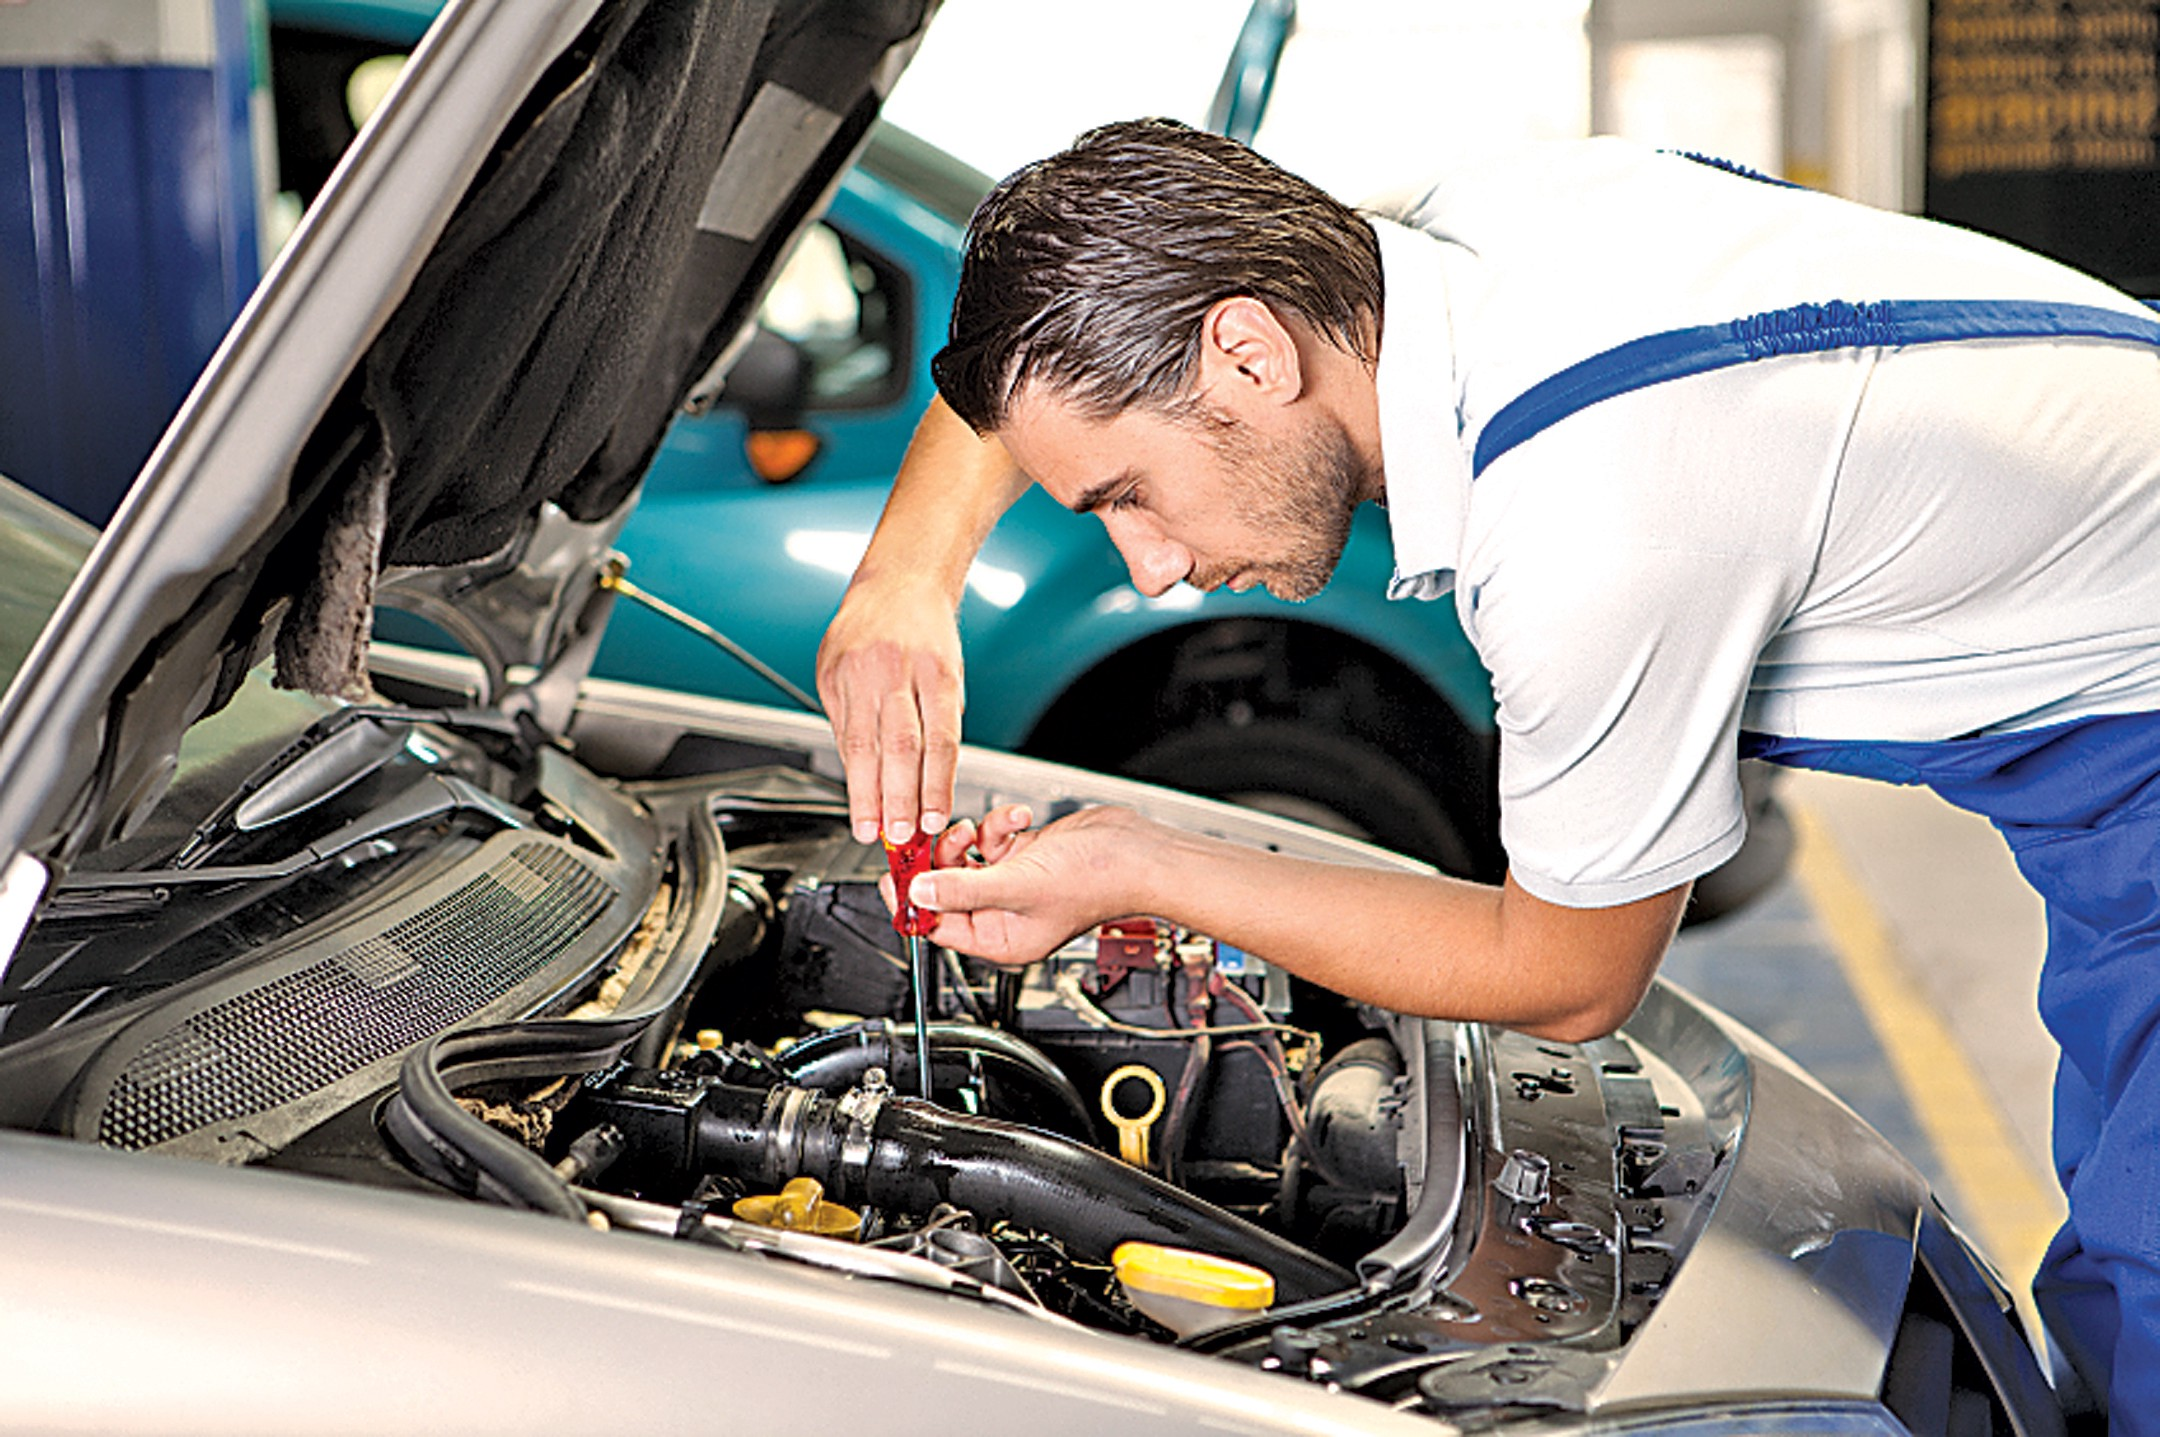 Auto Mechanic Required In Dubai Pasban Careers